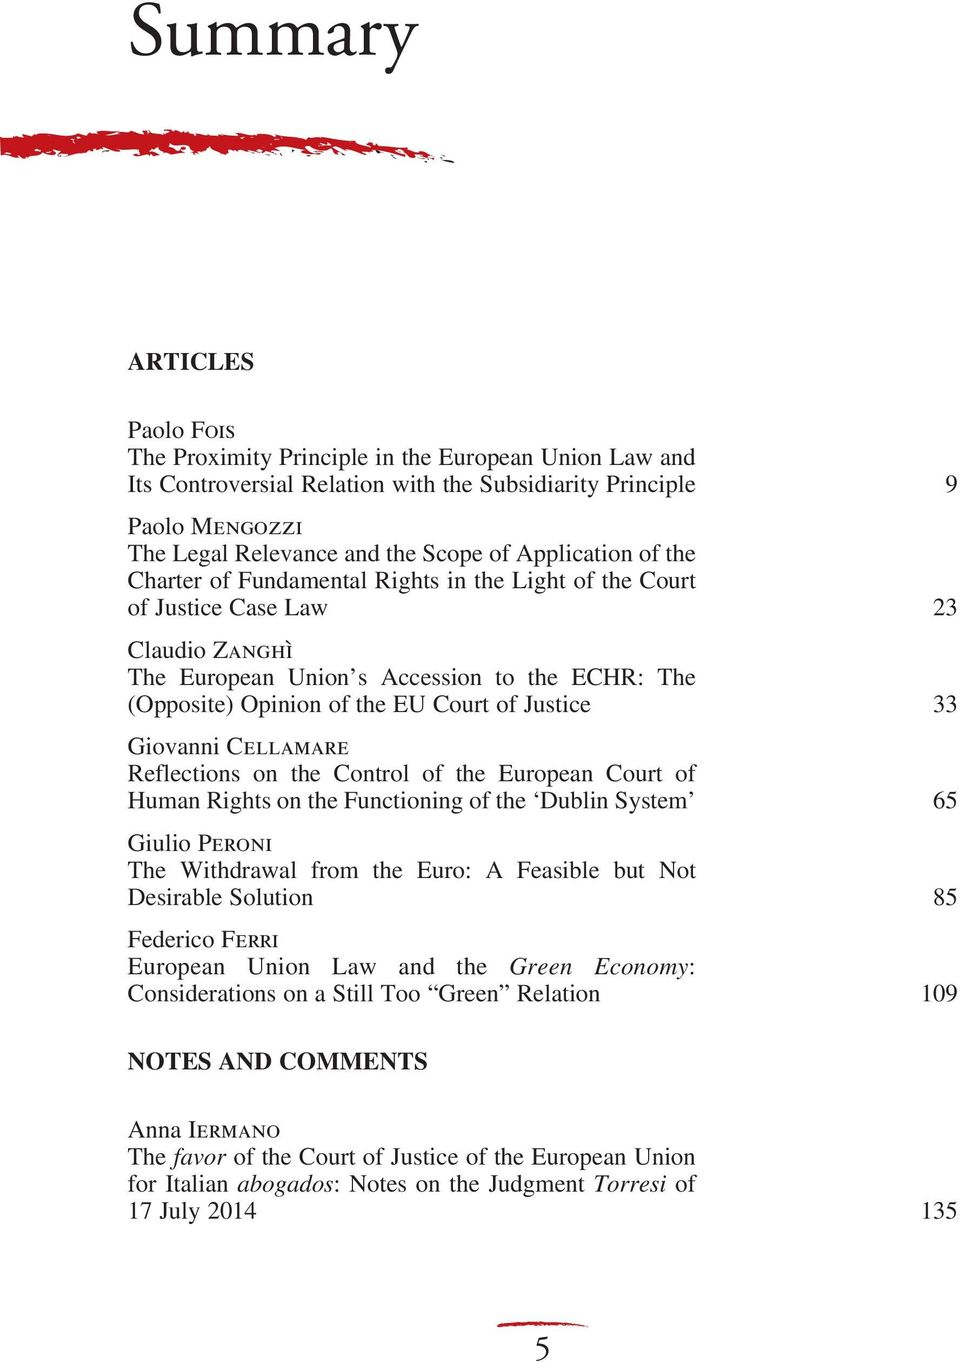 Justice 33 Giovanni Cellamare Reflections on the Control of the European Court of Human Rights on the Functioning of the Dublin System 65 Giulio Peroni The Withdrawal from the Euro: A Feasible but